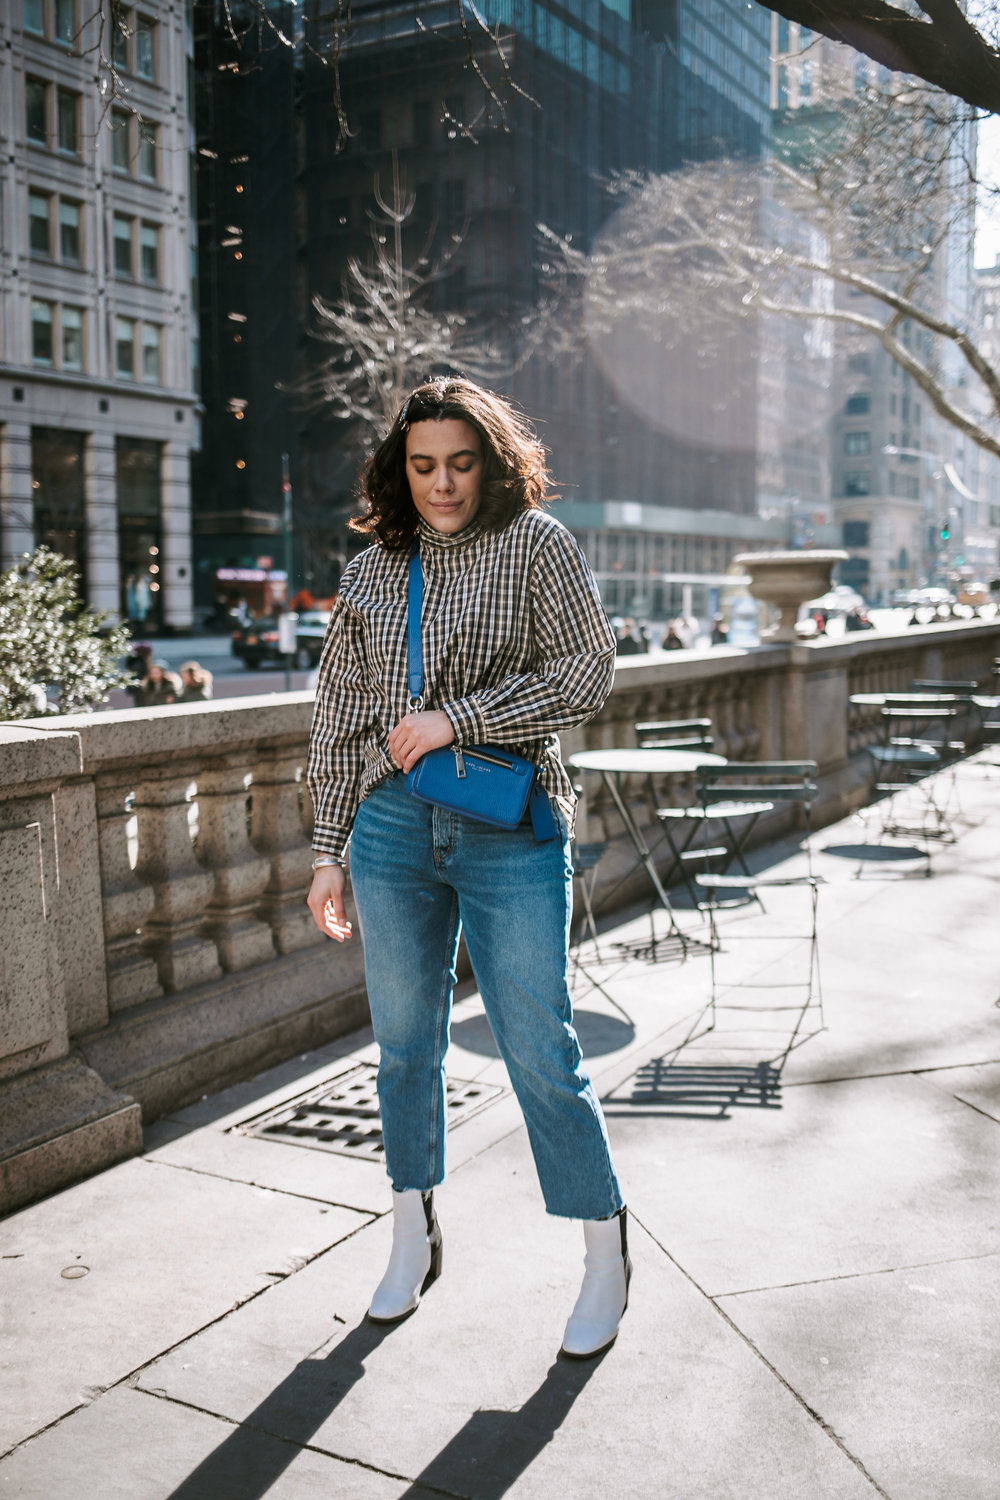 how-to-style-white-zara-boots-in-the-winter-gucci-hair-clip-barrette-dupe-latina-new-york-city-fashion-blogger-style-operator-winter-fashion.jpg